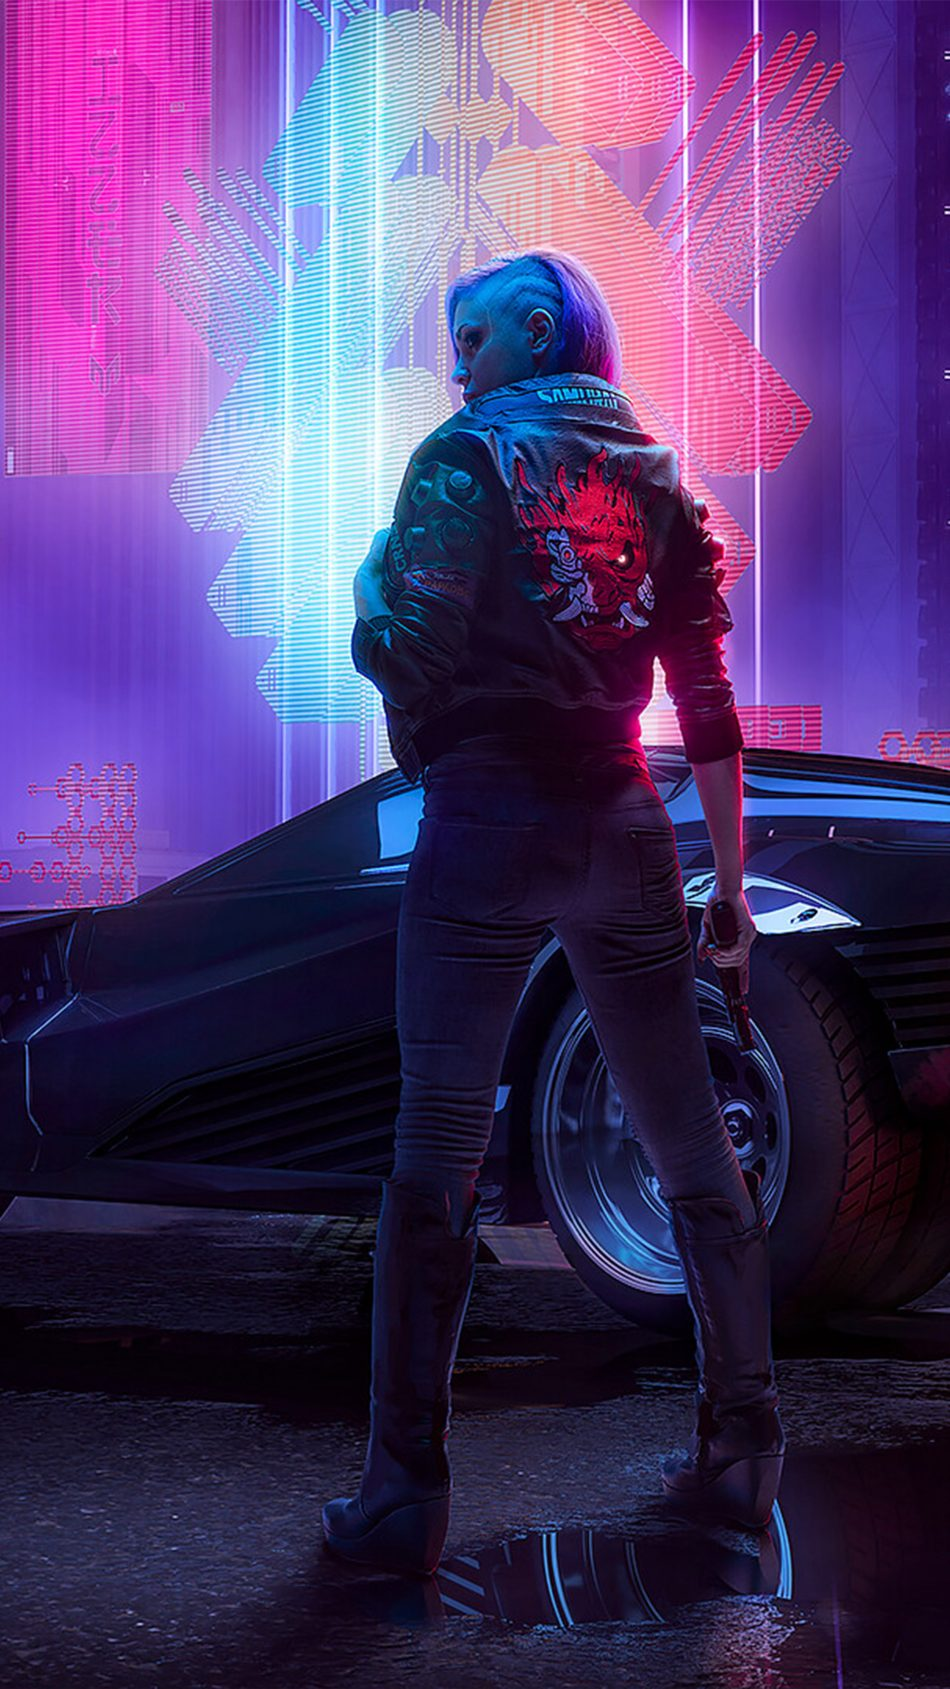 Futuristic Cyberpunk 2077 4K Ultra HD Mobile Wallpaper